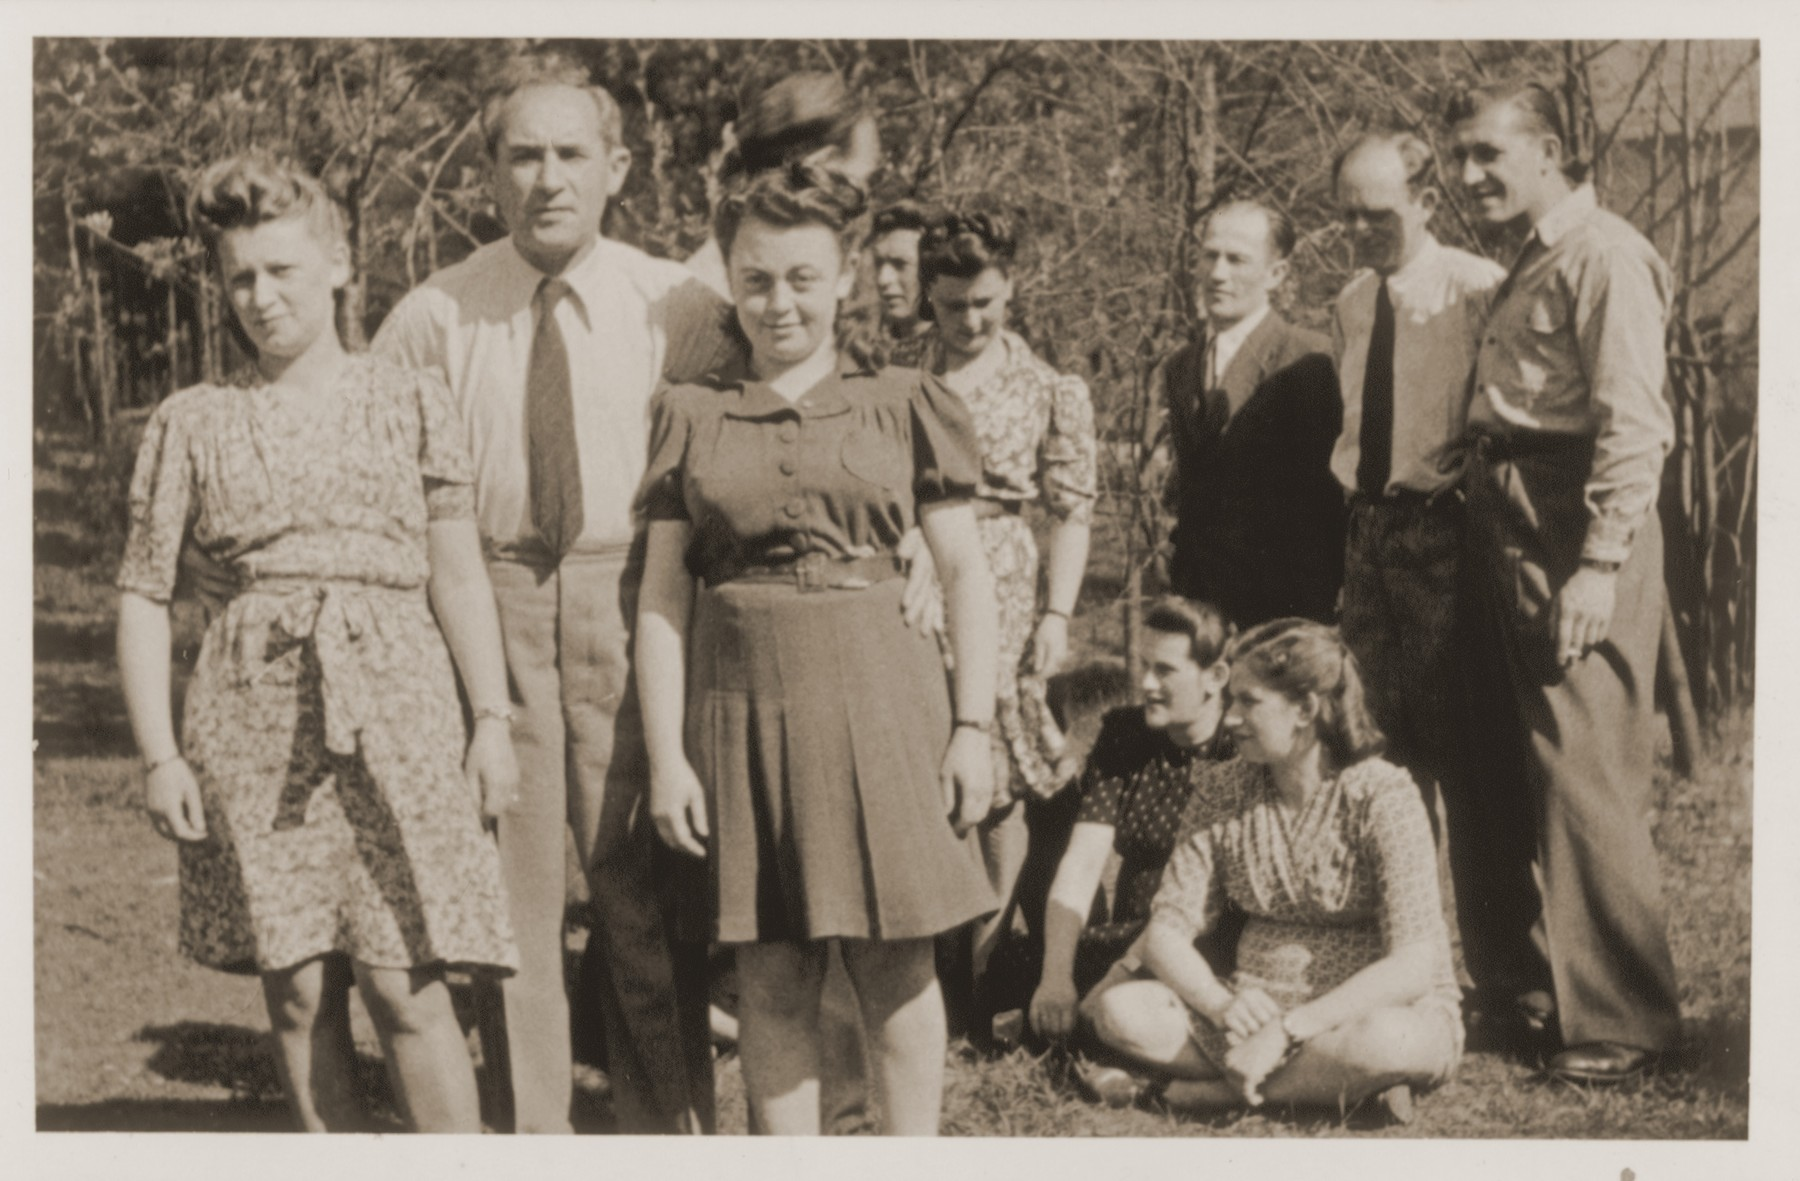 "A group of Jewish DPs at the Schlachtensee displaced persons camp.    Standing from left to right are: Guta Tencer, Moses Tencer, Chana Tencer, Pola Zyngier, Moshe Frymerman, Rachmiel Zyngier, and unidentified.  Seated from left to right are: Renia (Kilman) Frymerman and Eva (Kilman) Zyngier.  Verso is signed ""Hania."""